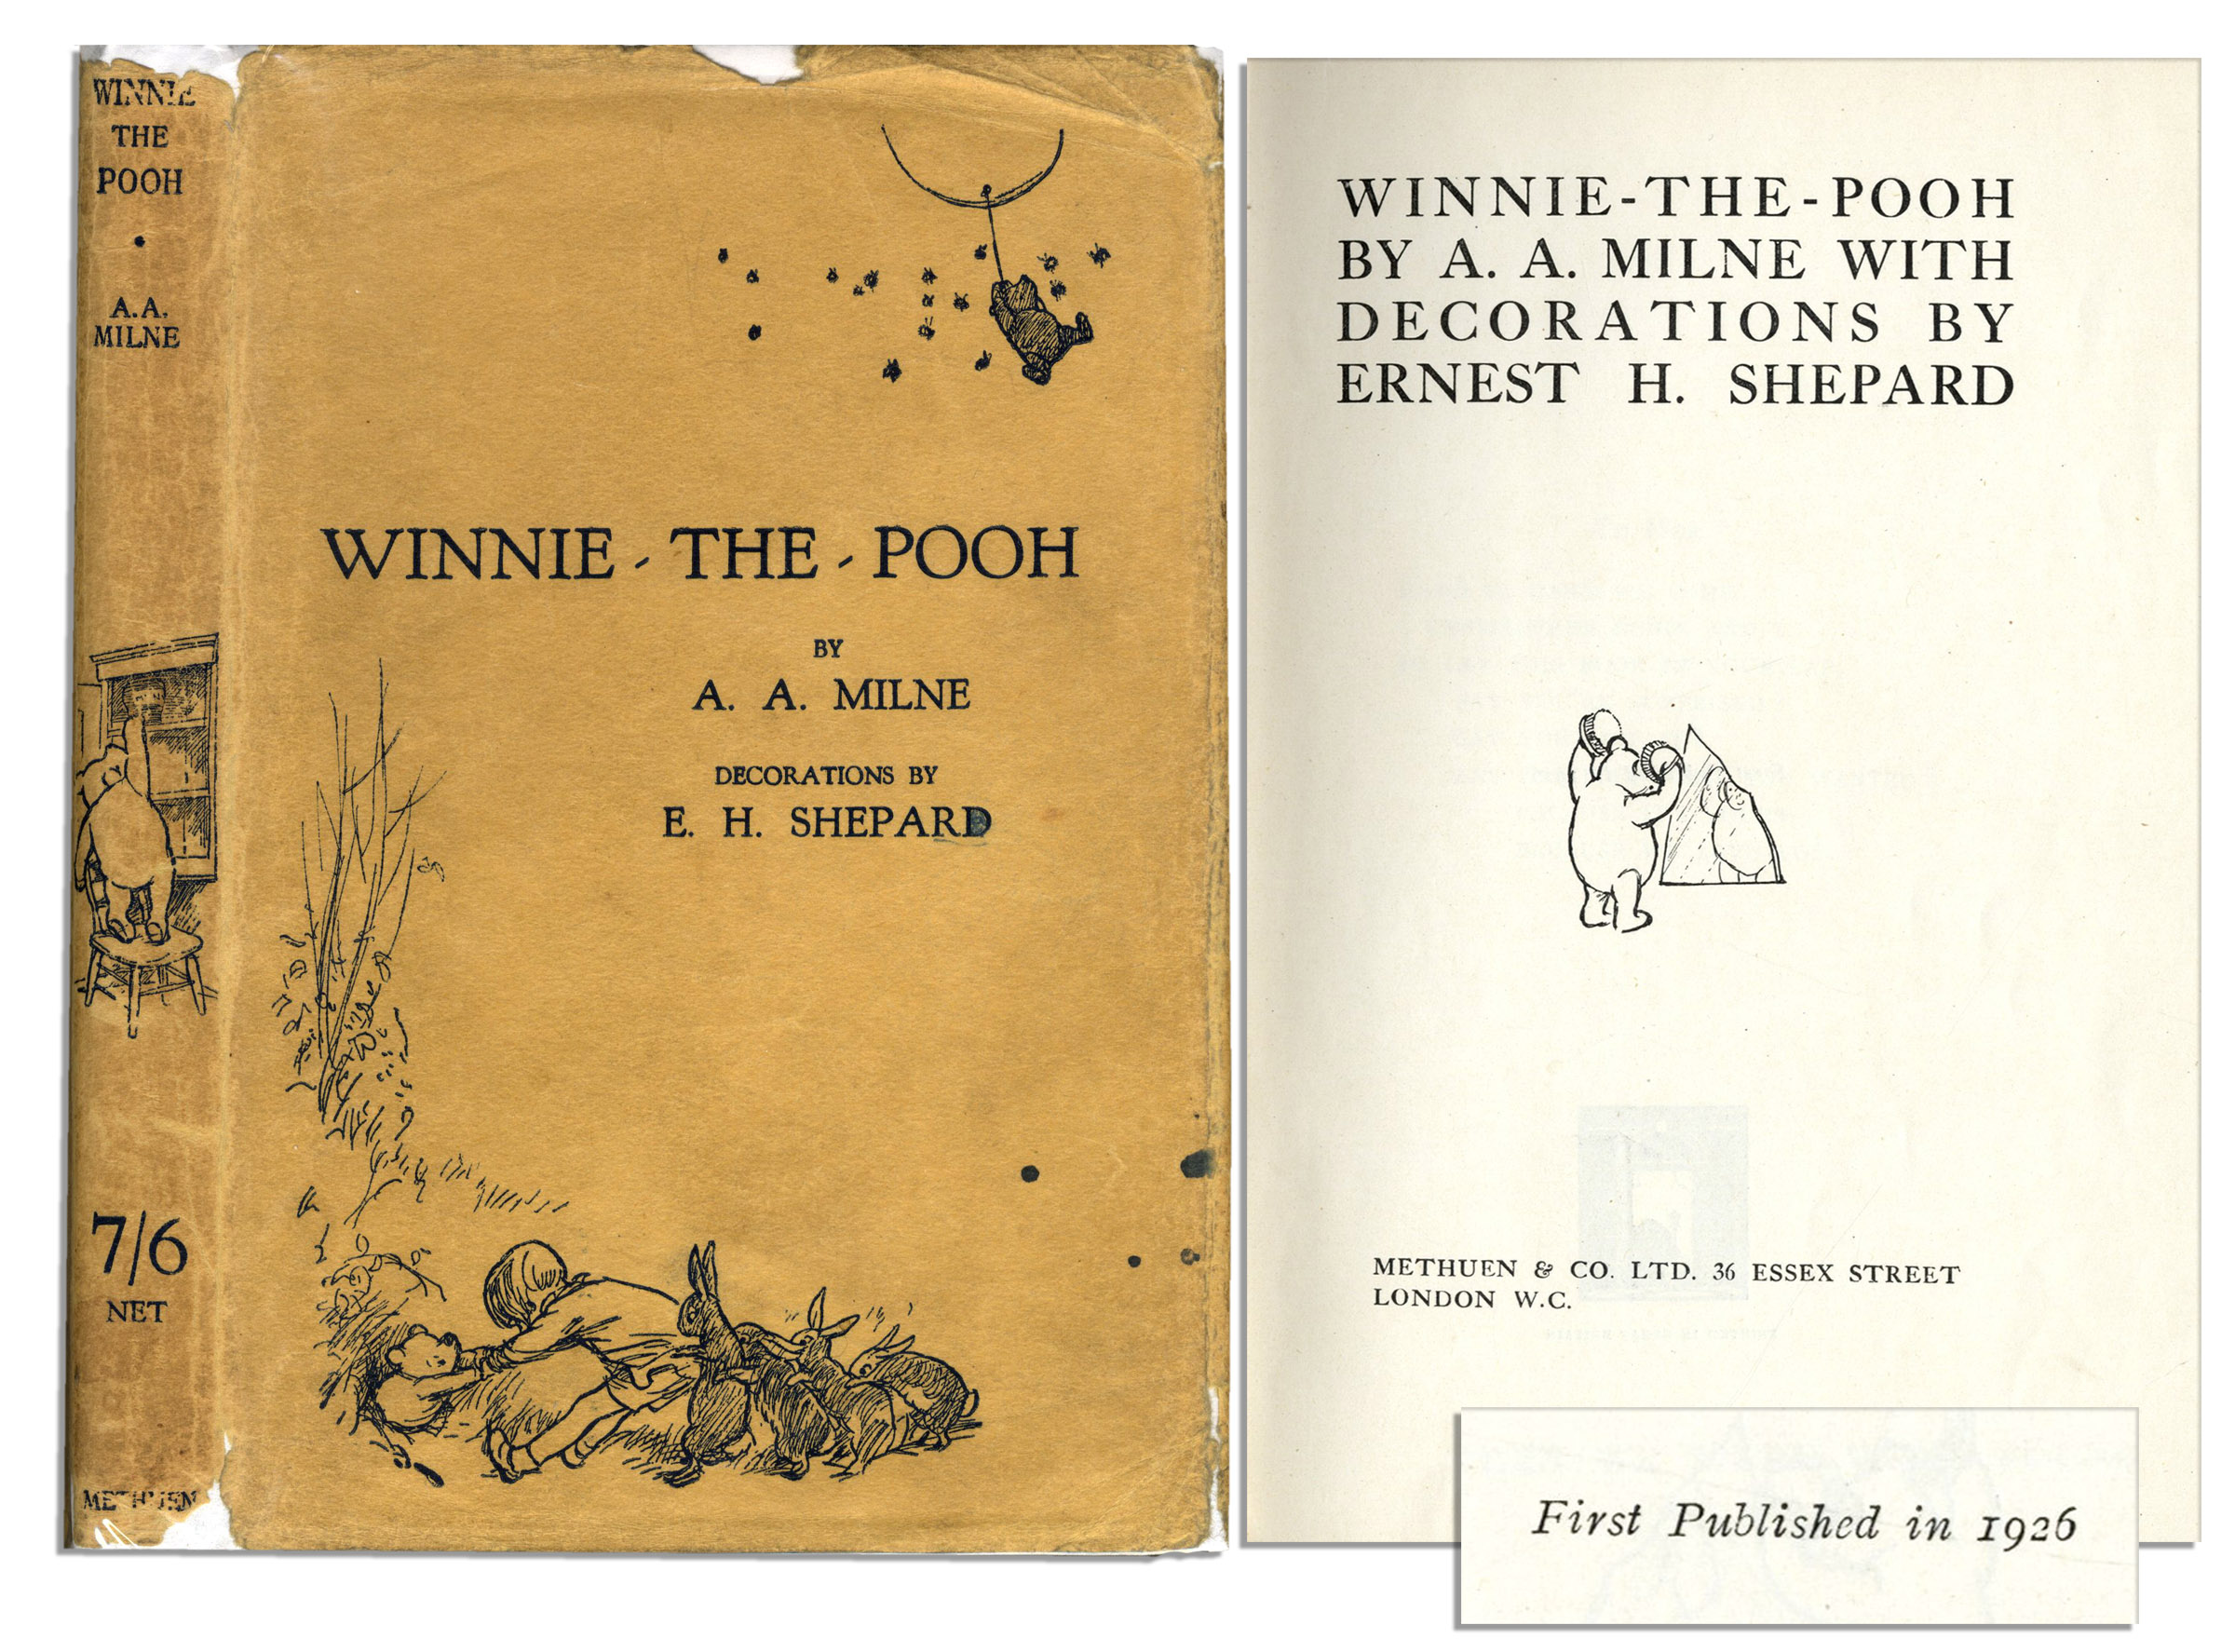 Image result for the book winnie the pooh debut in 1926